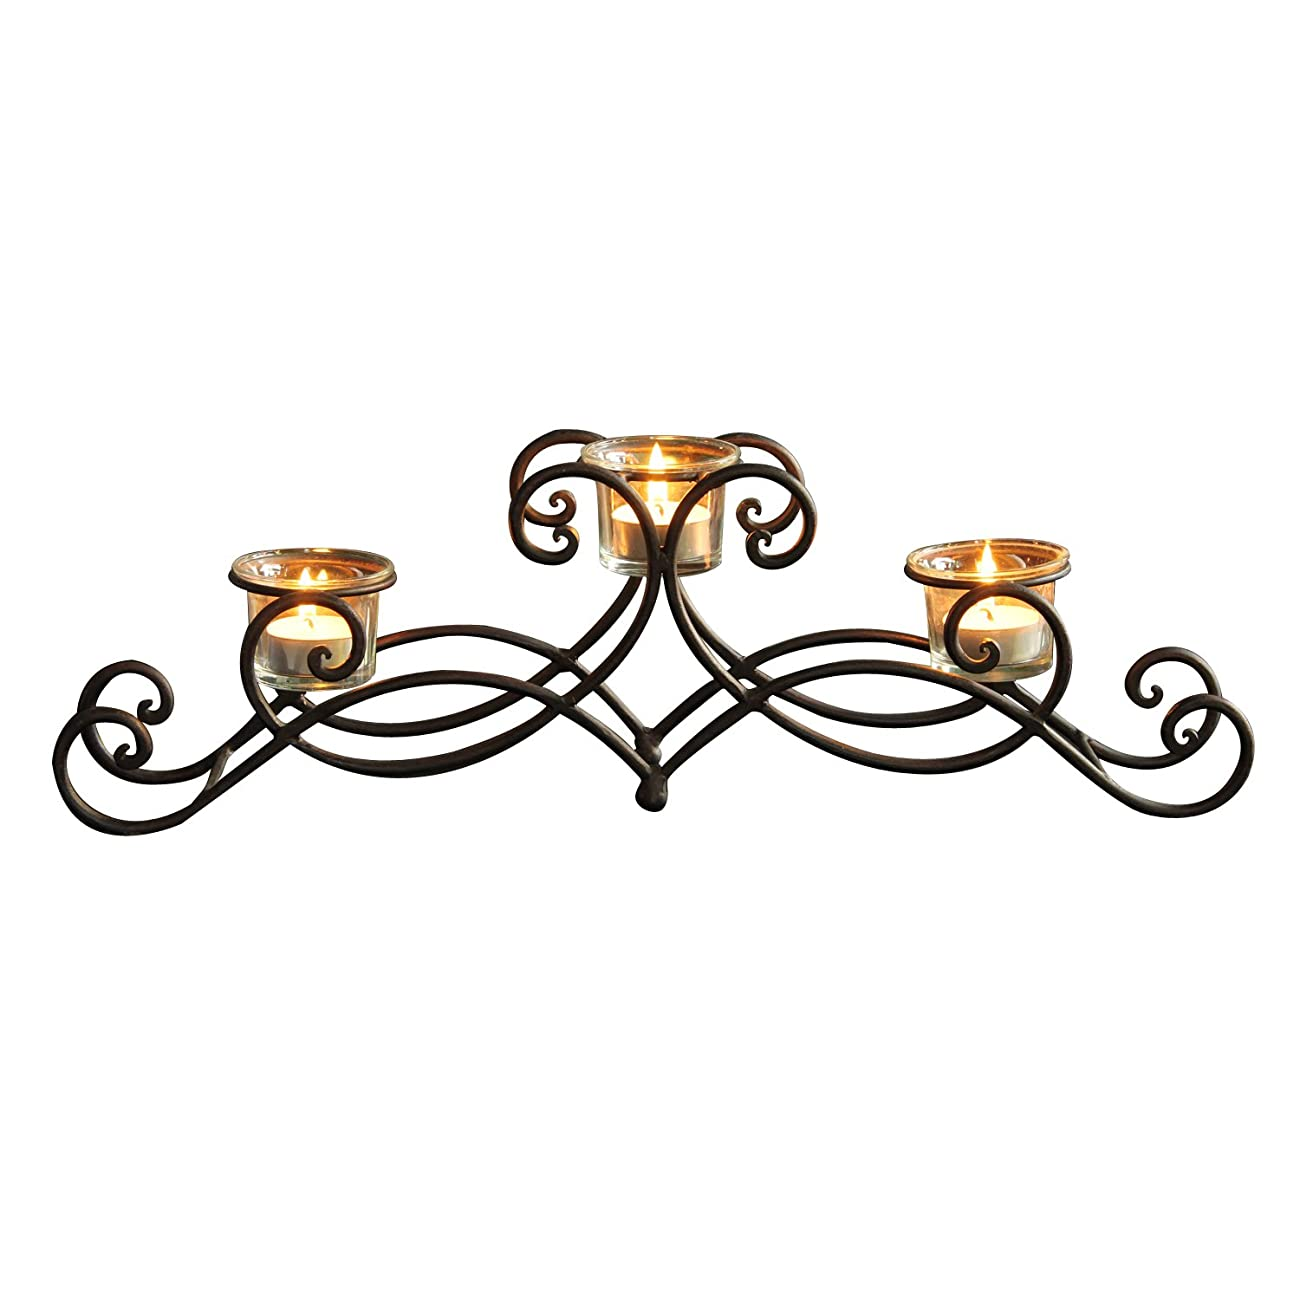 ELEGAN Black Iron Table Top Candle Holder, Holds 3 Tea lights 2